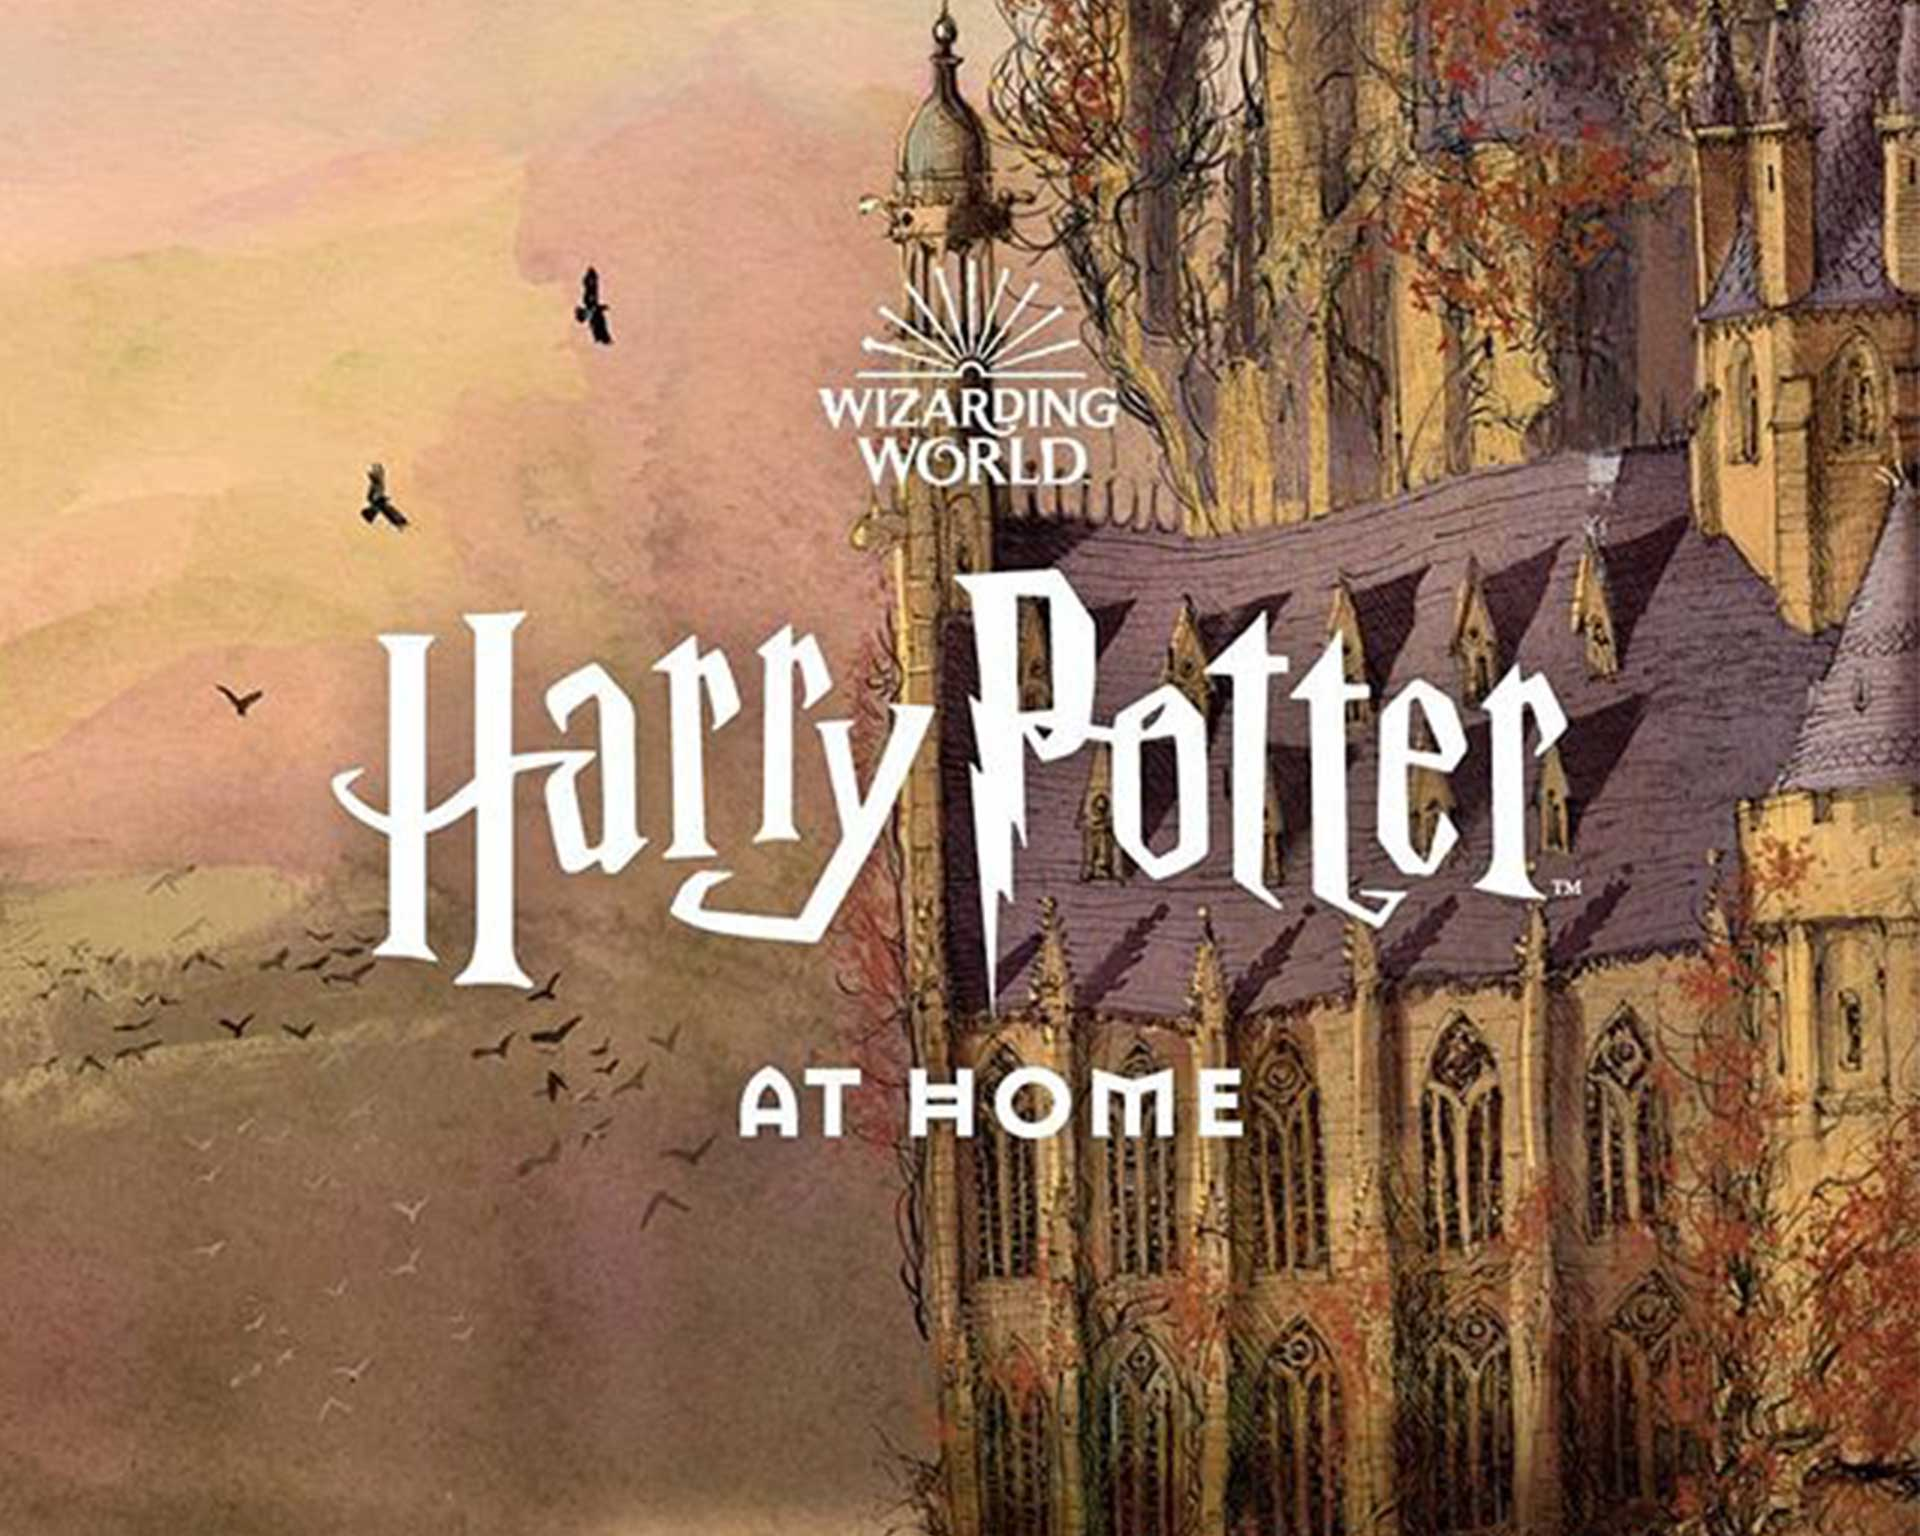 Listen to Daniel Radcliffe Read Harry Potter | Den of Geek